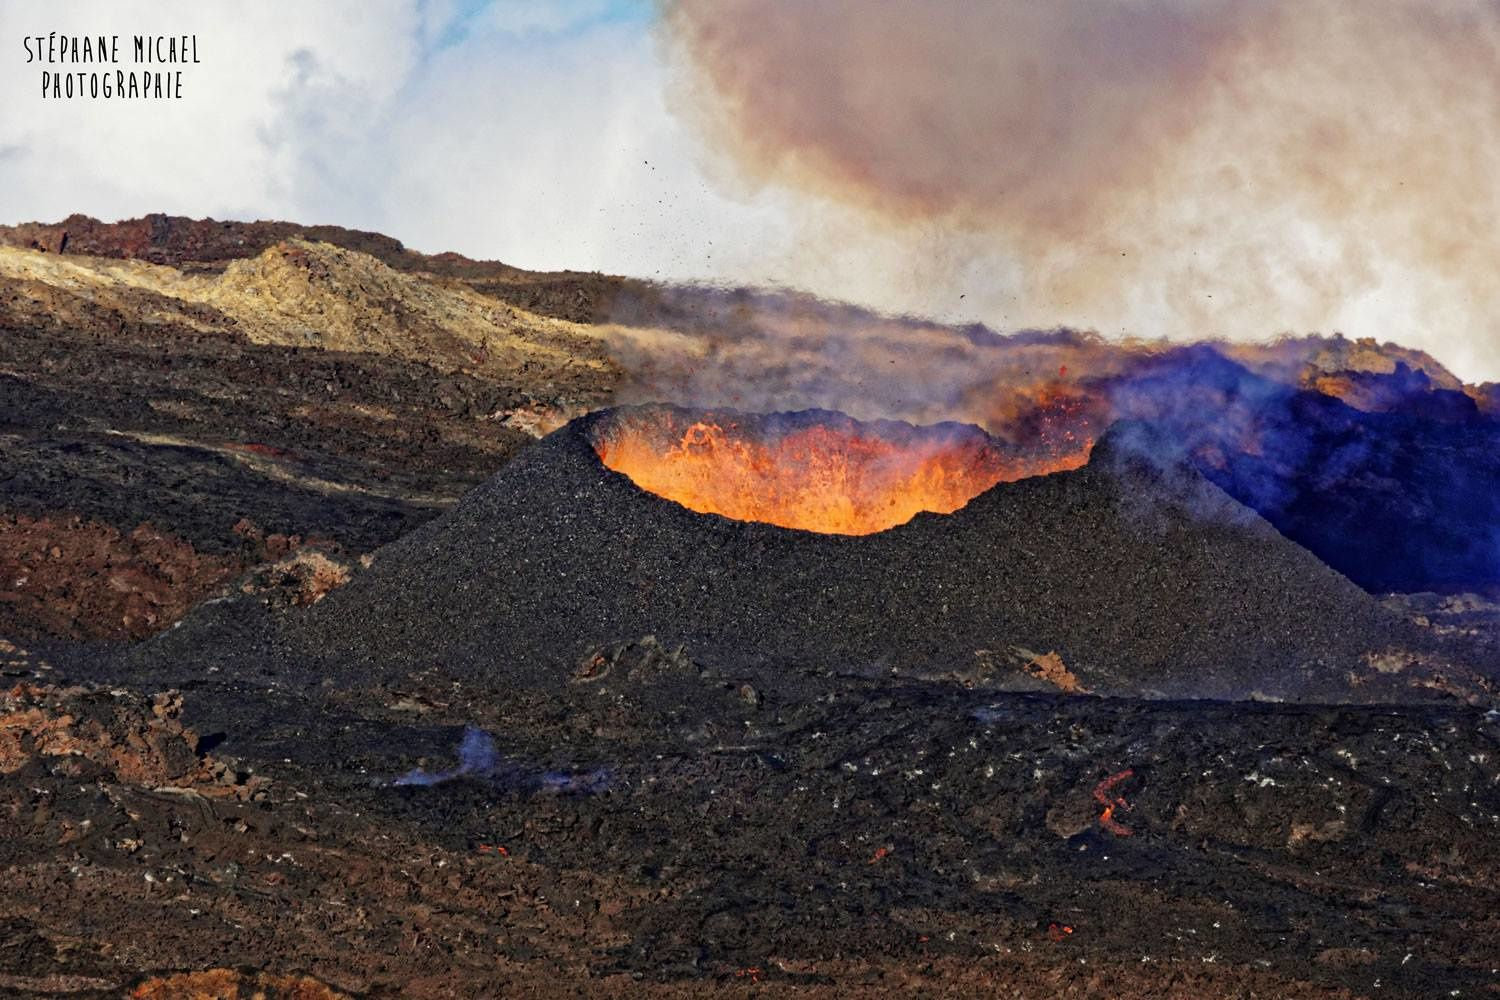 Piton de la Fournaise - the central cone is completely closed - photo 04.05.2018 / Stephane Nicael via Fournaise info